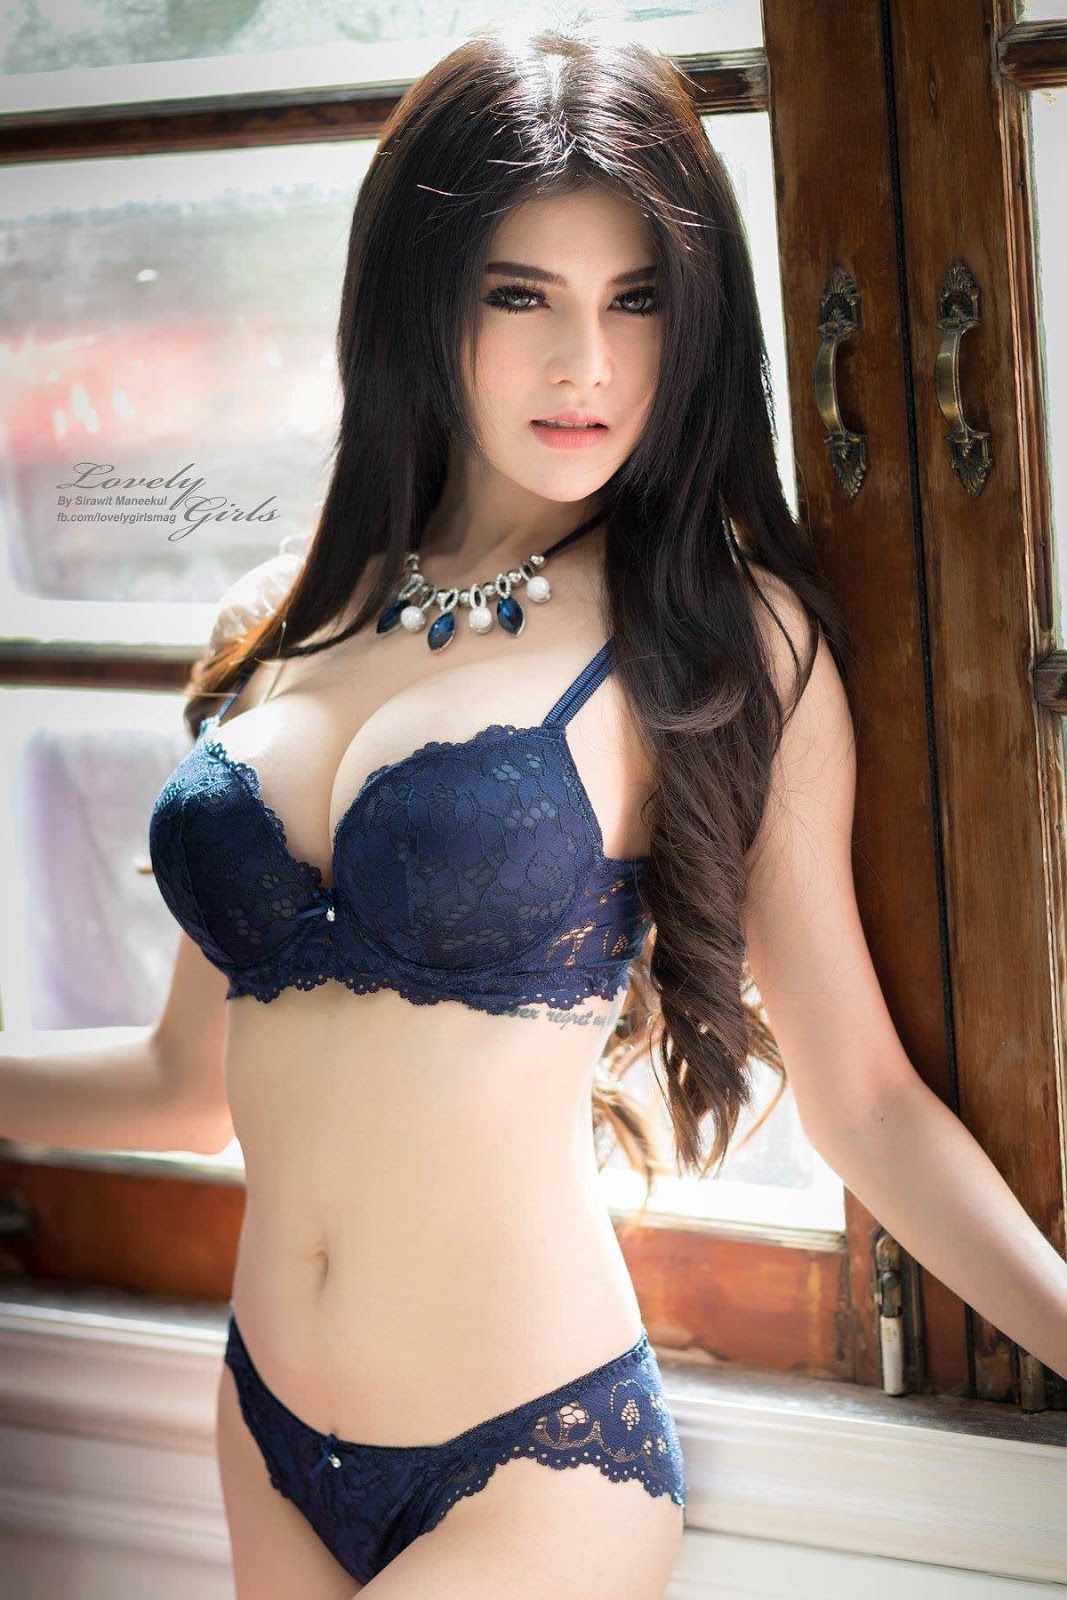 Welcome To Sexy Hot Asian Girls Gallery Here We Have The Hottest And The Most Sexy Asian Girls Wallpaper For Your Viewing And Download